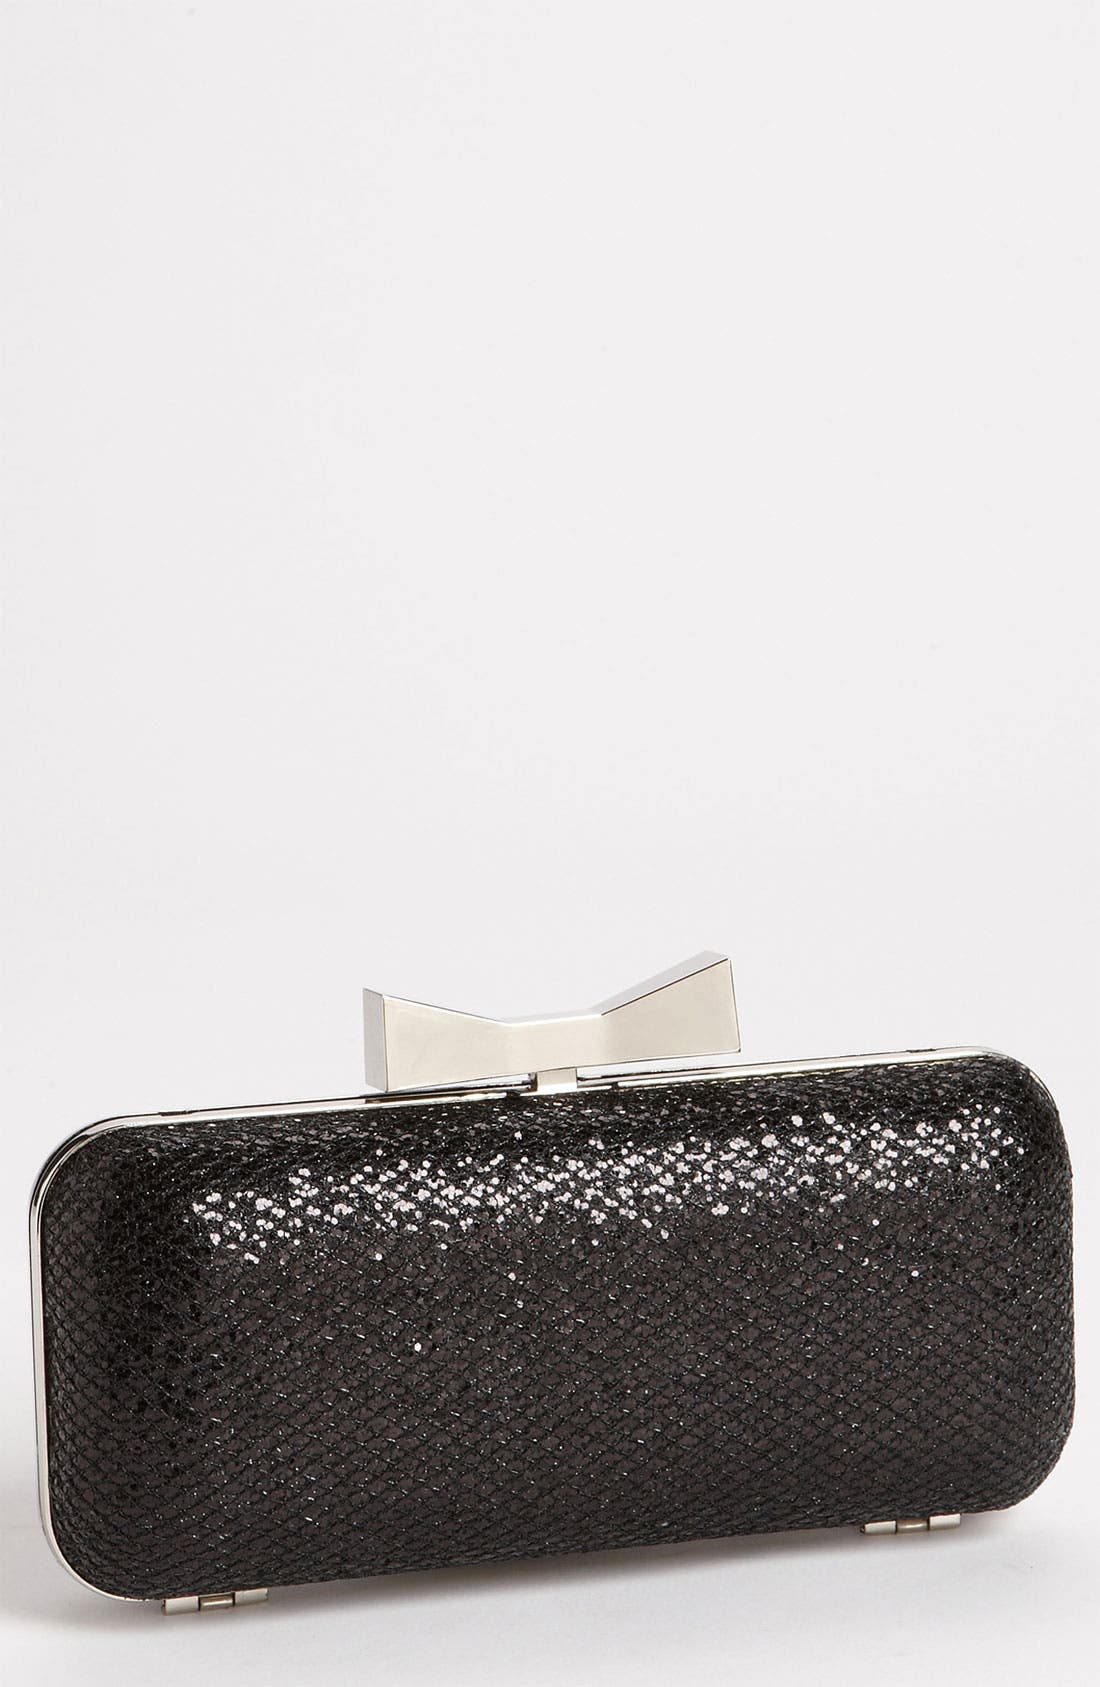 Natasha Couture 'Glitter' Clutch,                         Main,                         color, 001